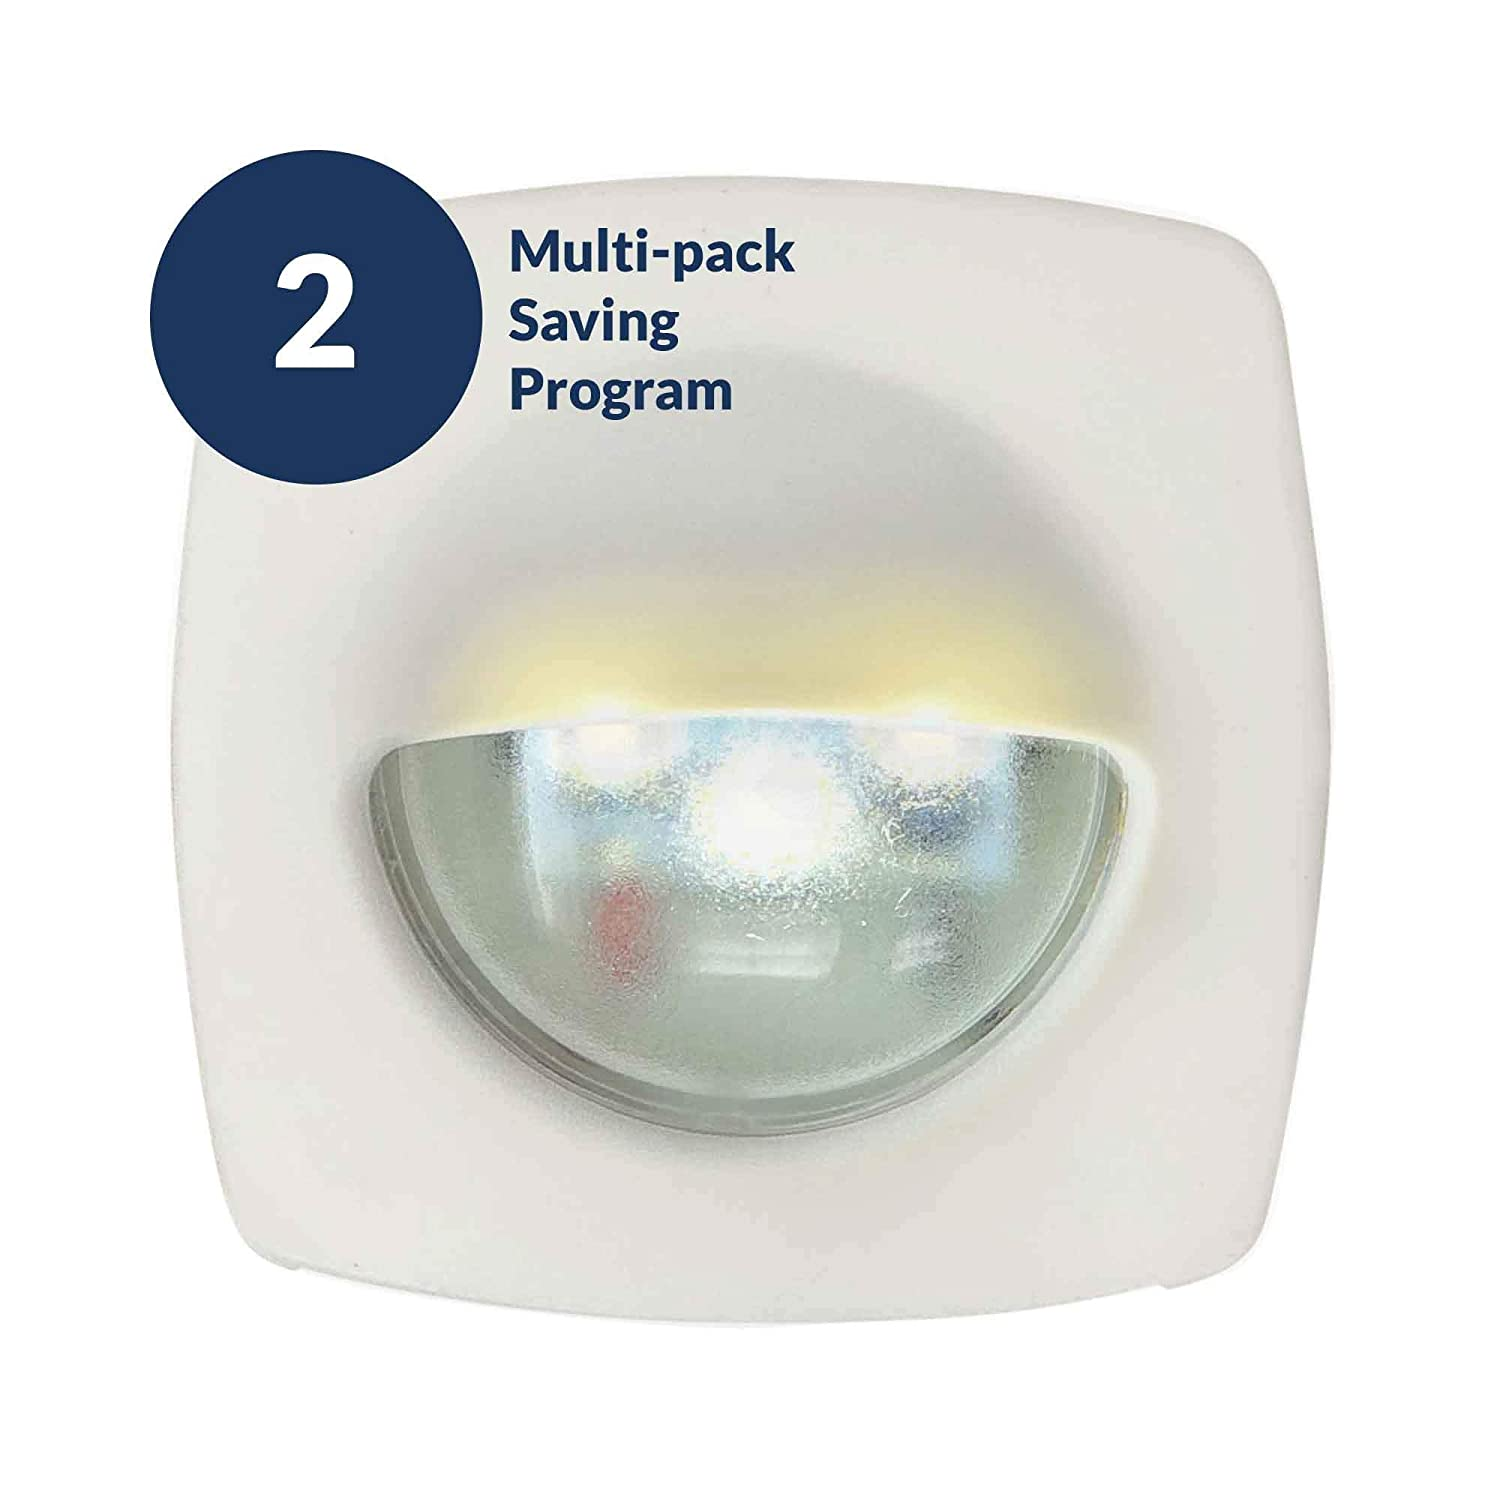 LED Cool White Companion Way Light Five Oceans FO-3994 4 Pack White Housing